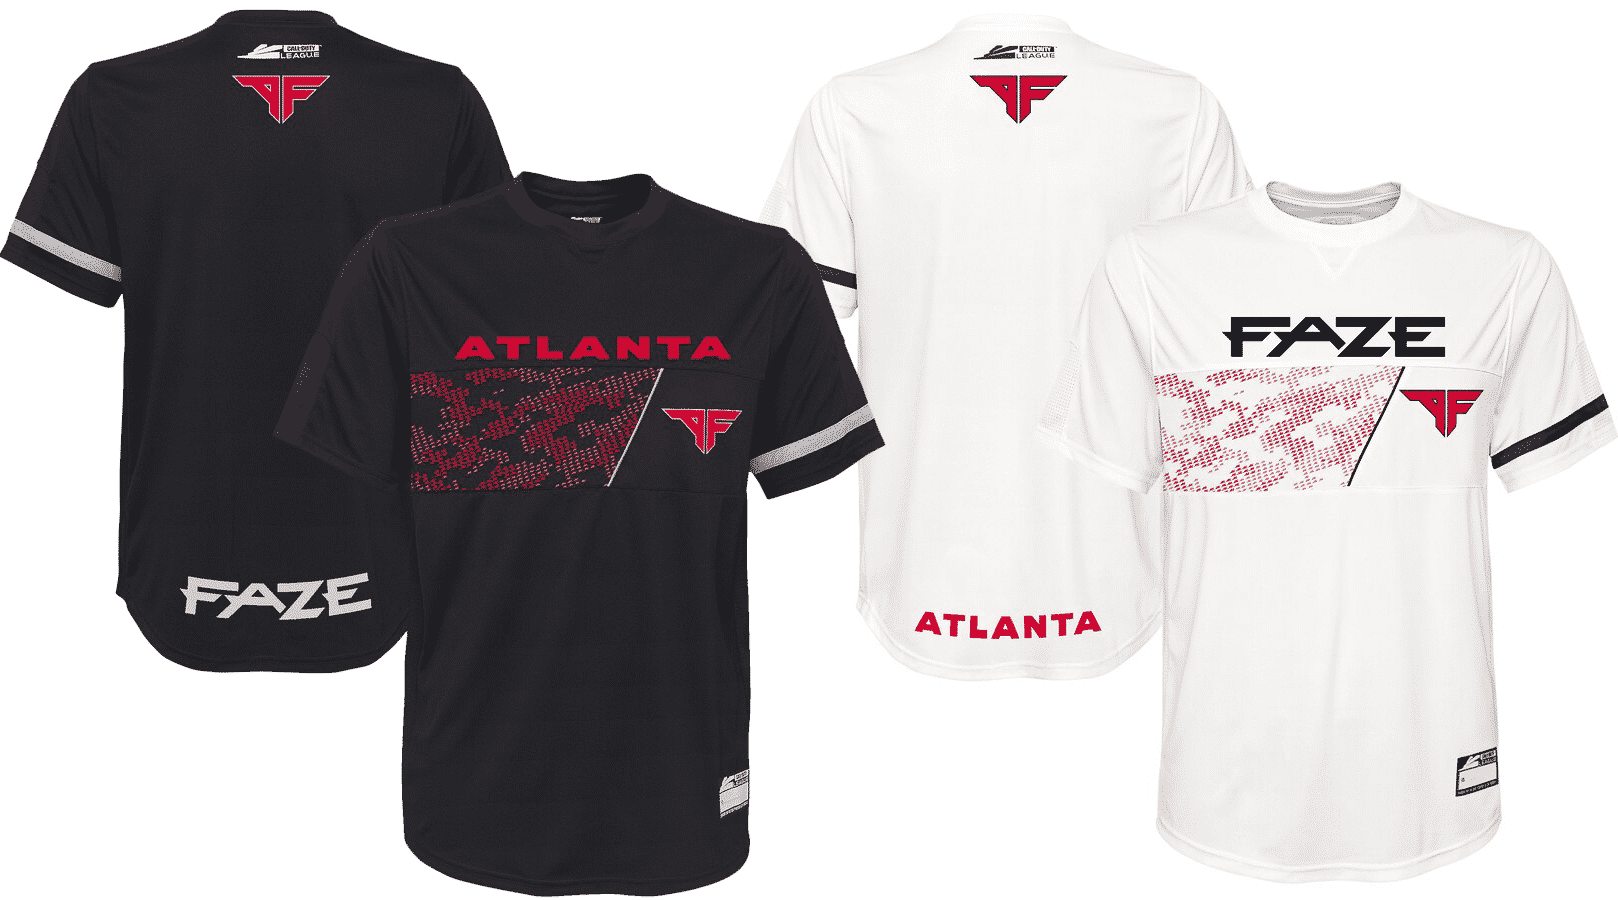 Atlanta FaZe Jersey Call of Duty League 2020 Esports